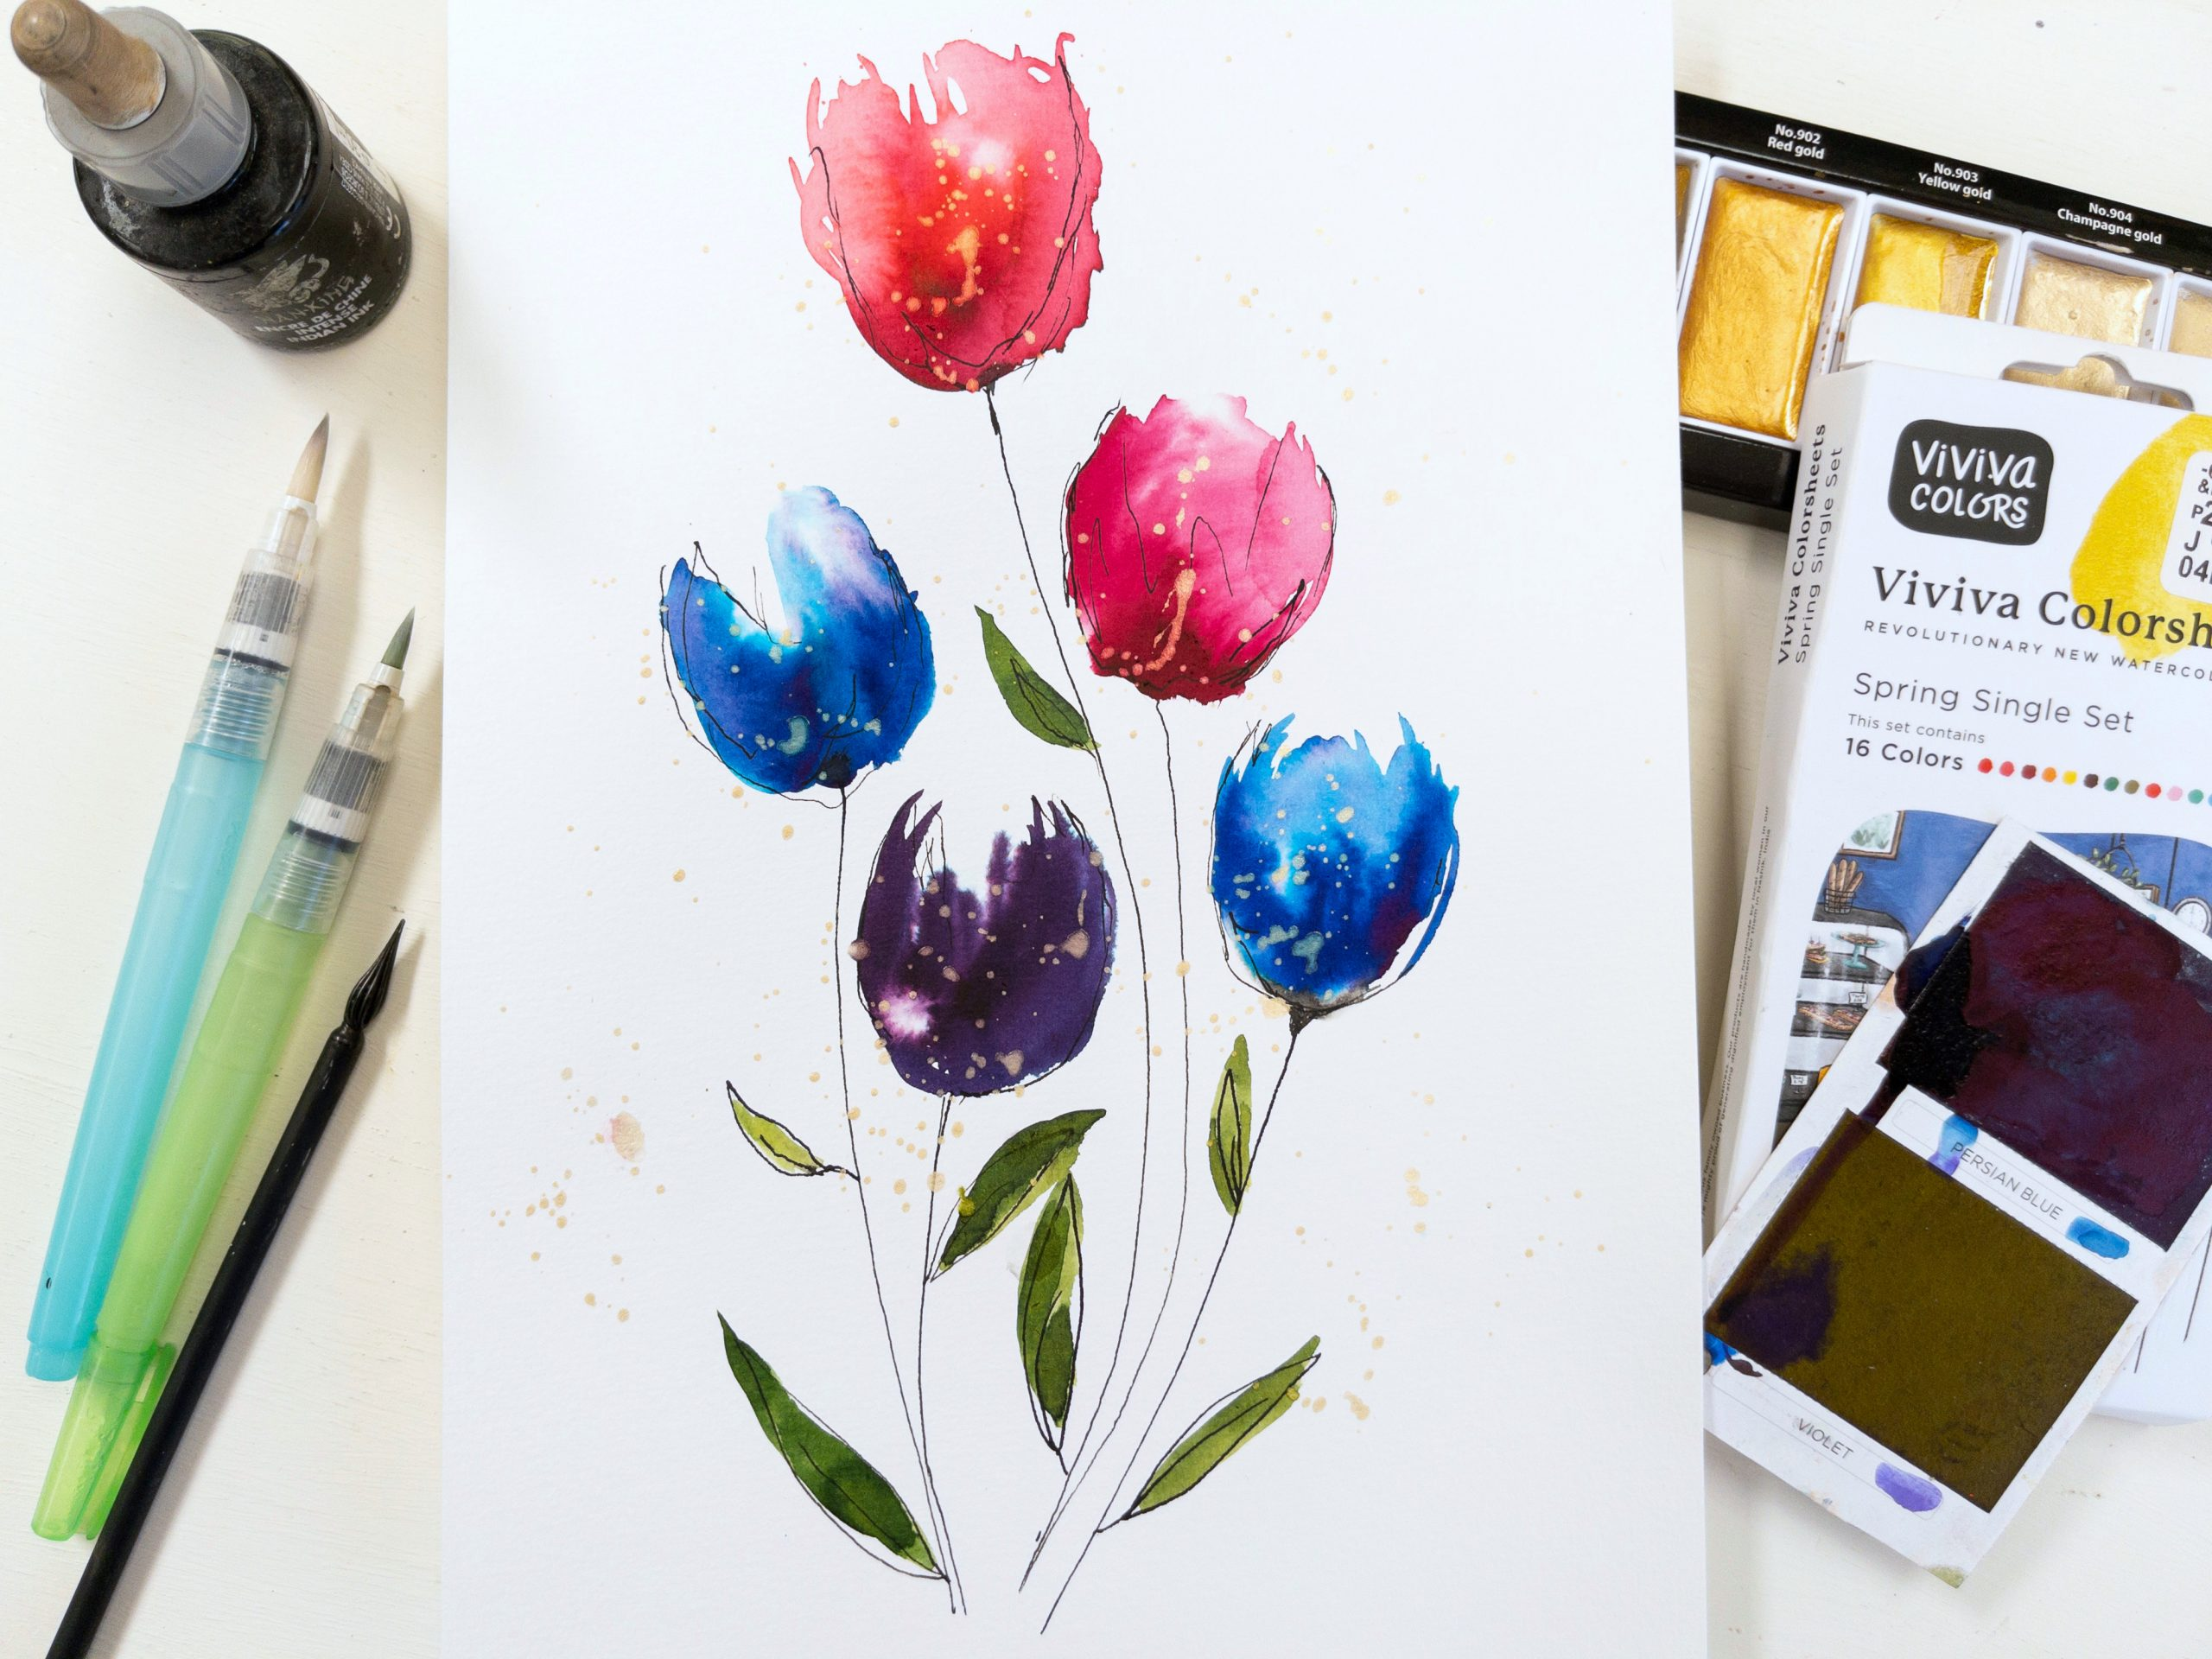 watercolor painting of flowers with Viviva colorsheets and Kuretake waterbrushes in bright colors including Kuretake Starry Colors